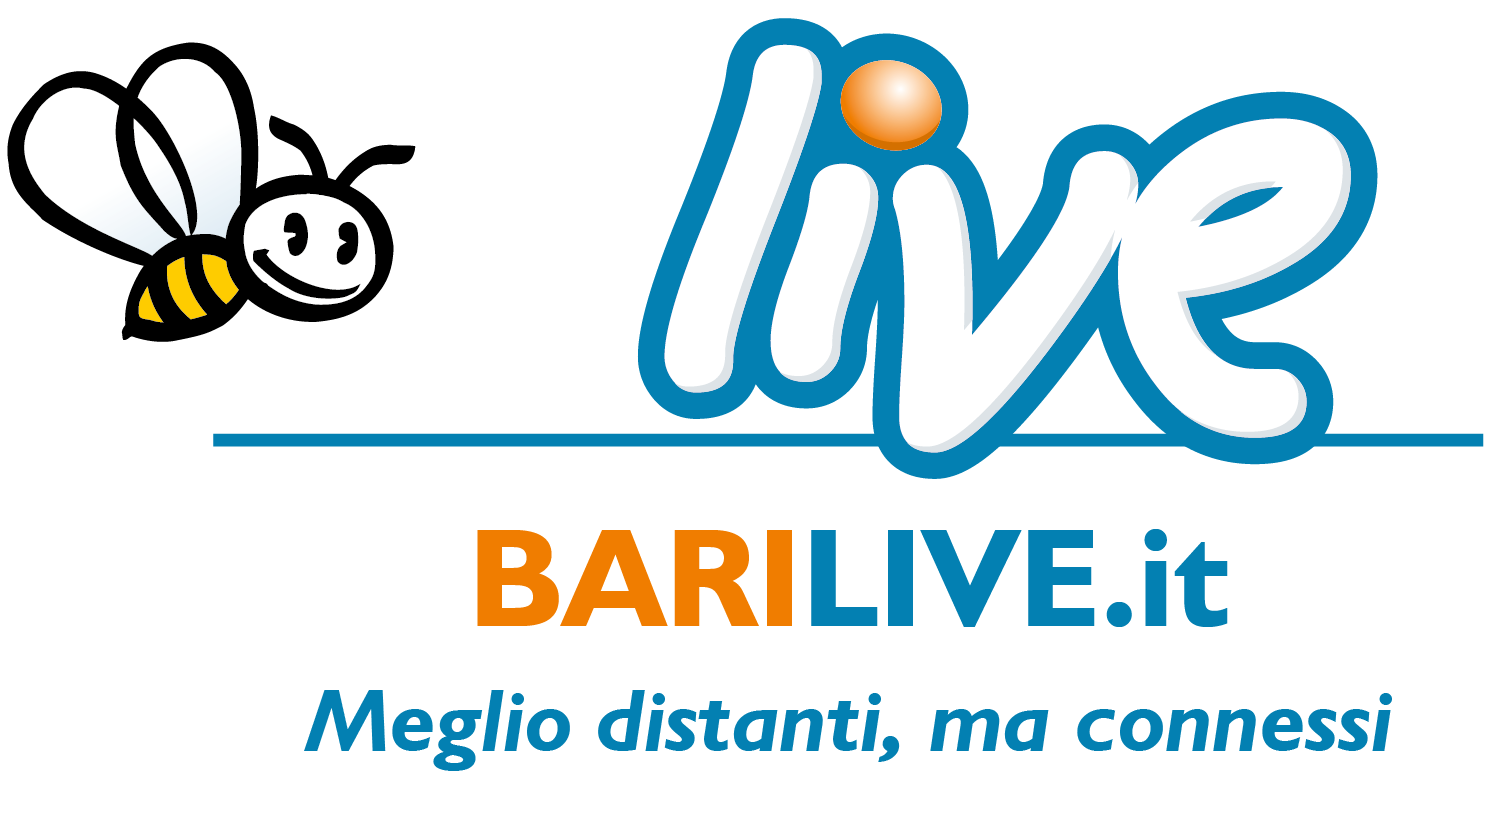 BariLive.it